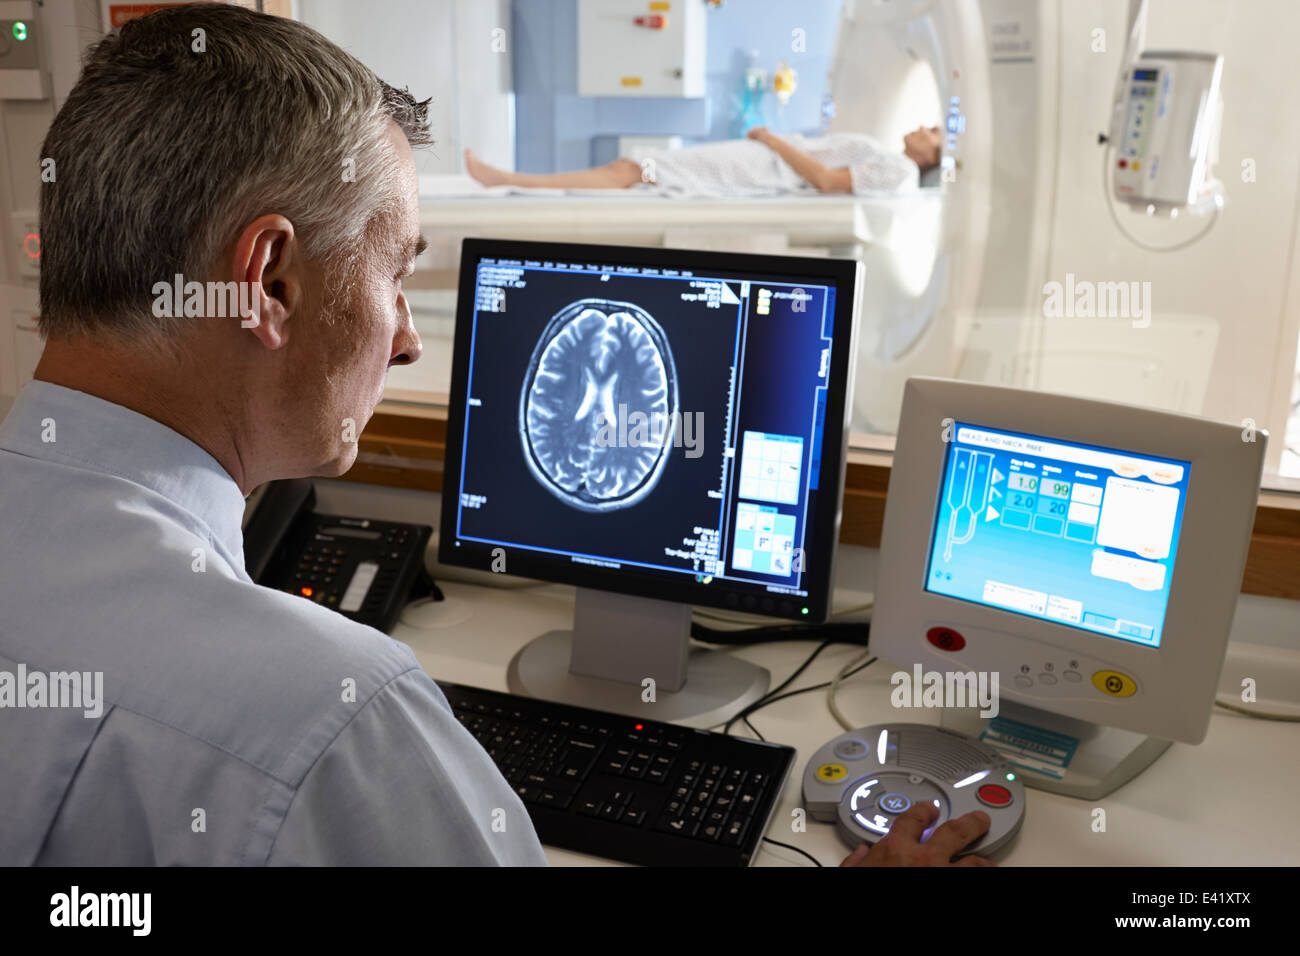 Radiologist looking at brain scan image on computer screen - Stock Image